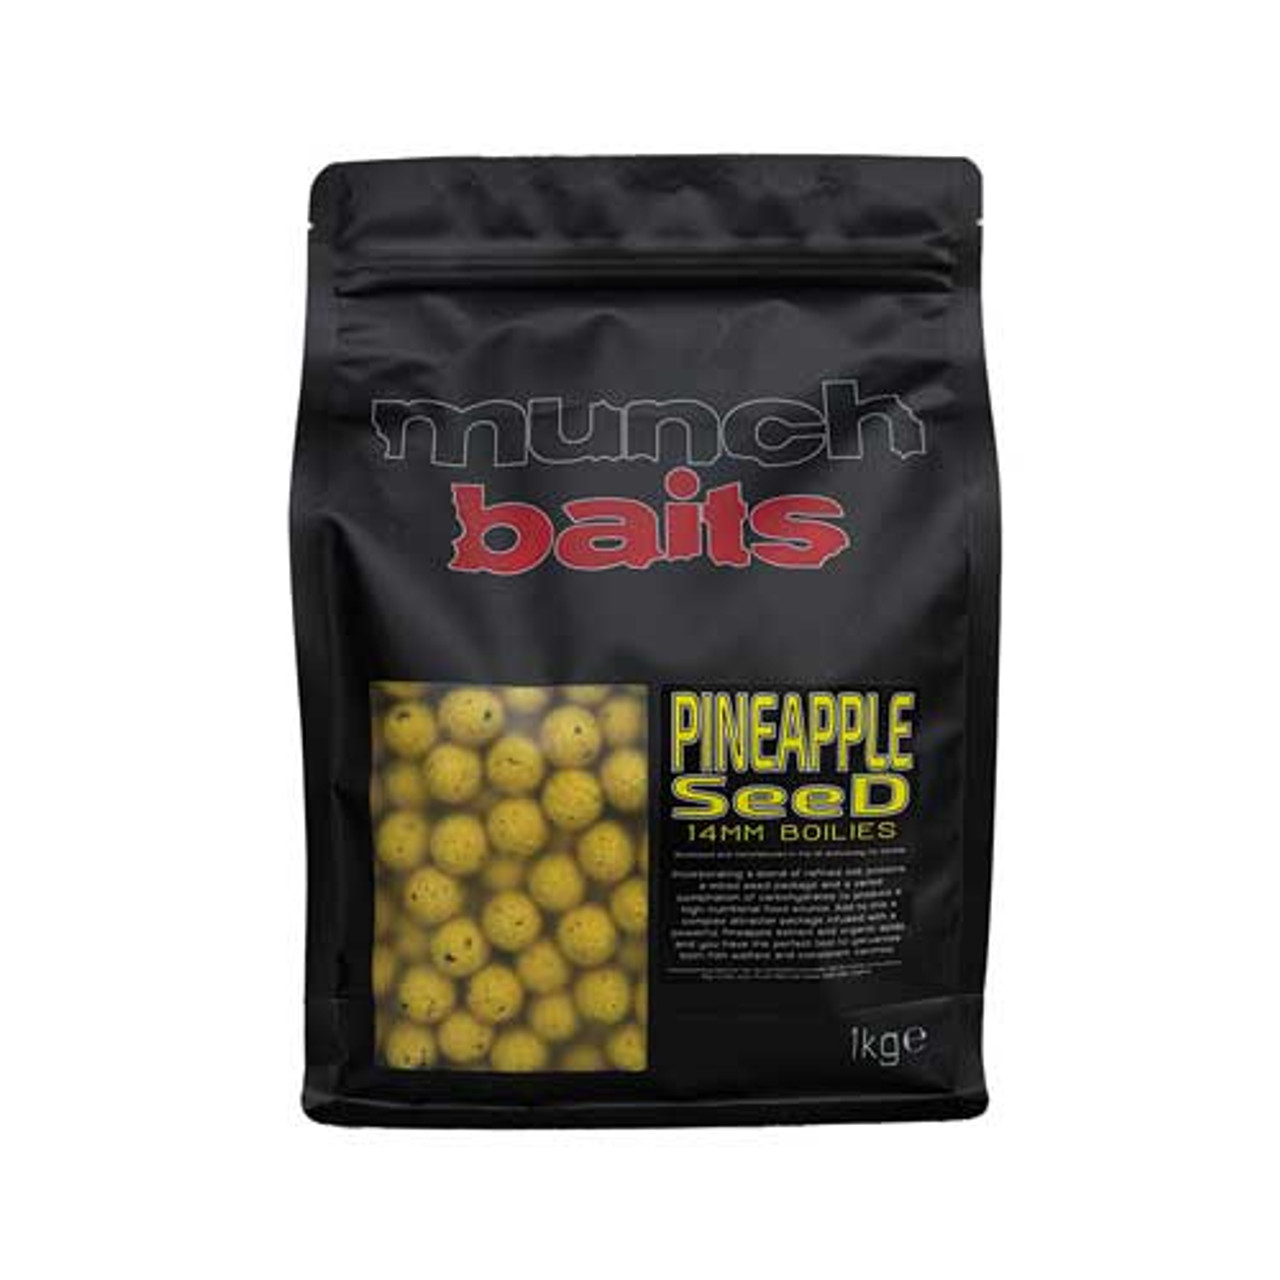 Munch Baits Pineapple Seed 14mm Boilies 1kg